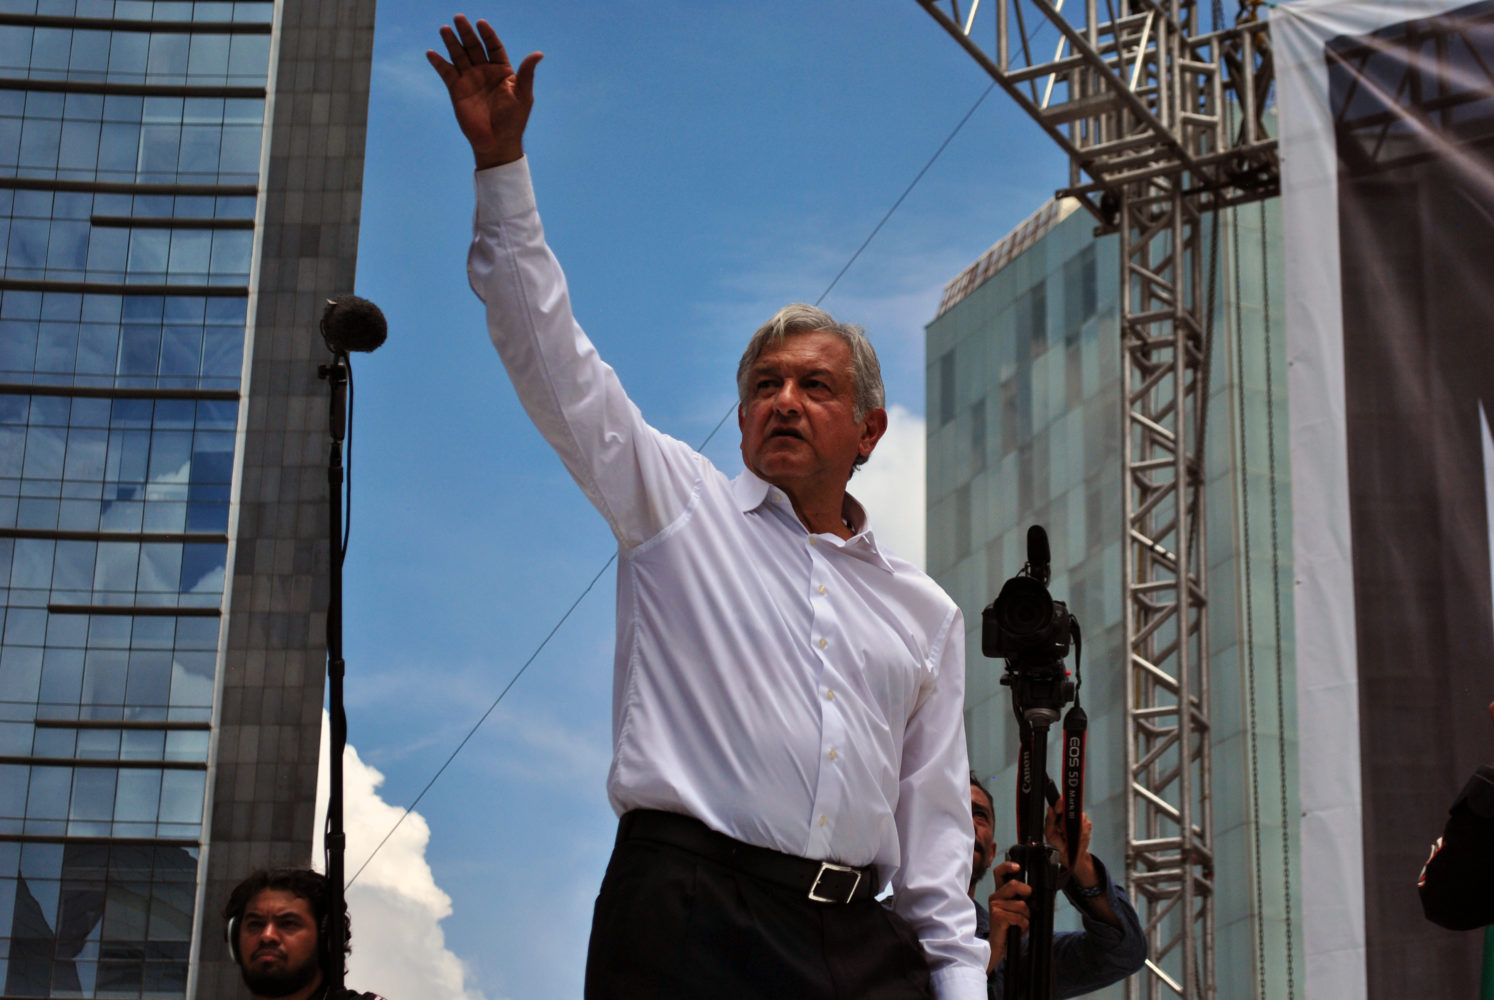 Mexico's President-Elect Wins Sweeping Mandate to Reshape the Country